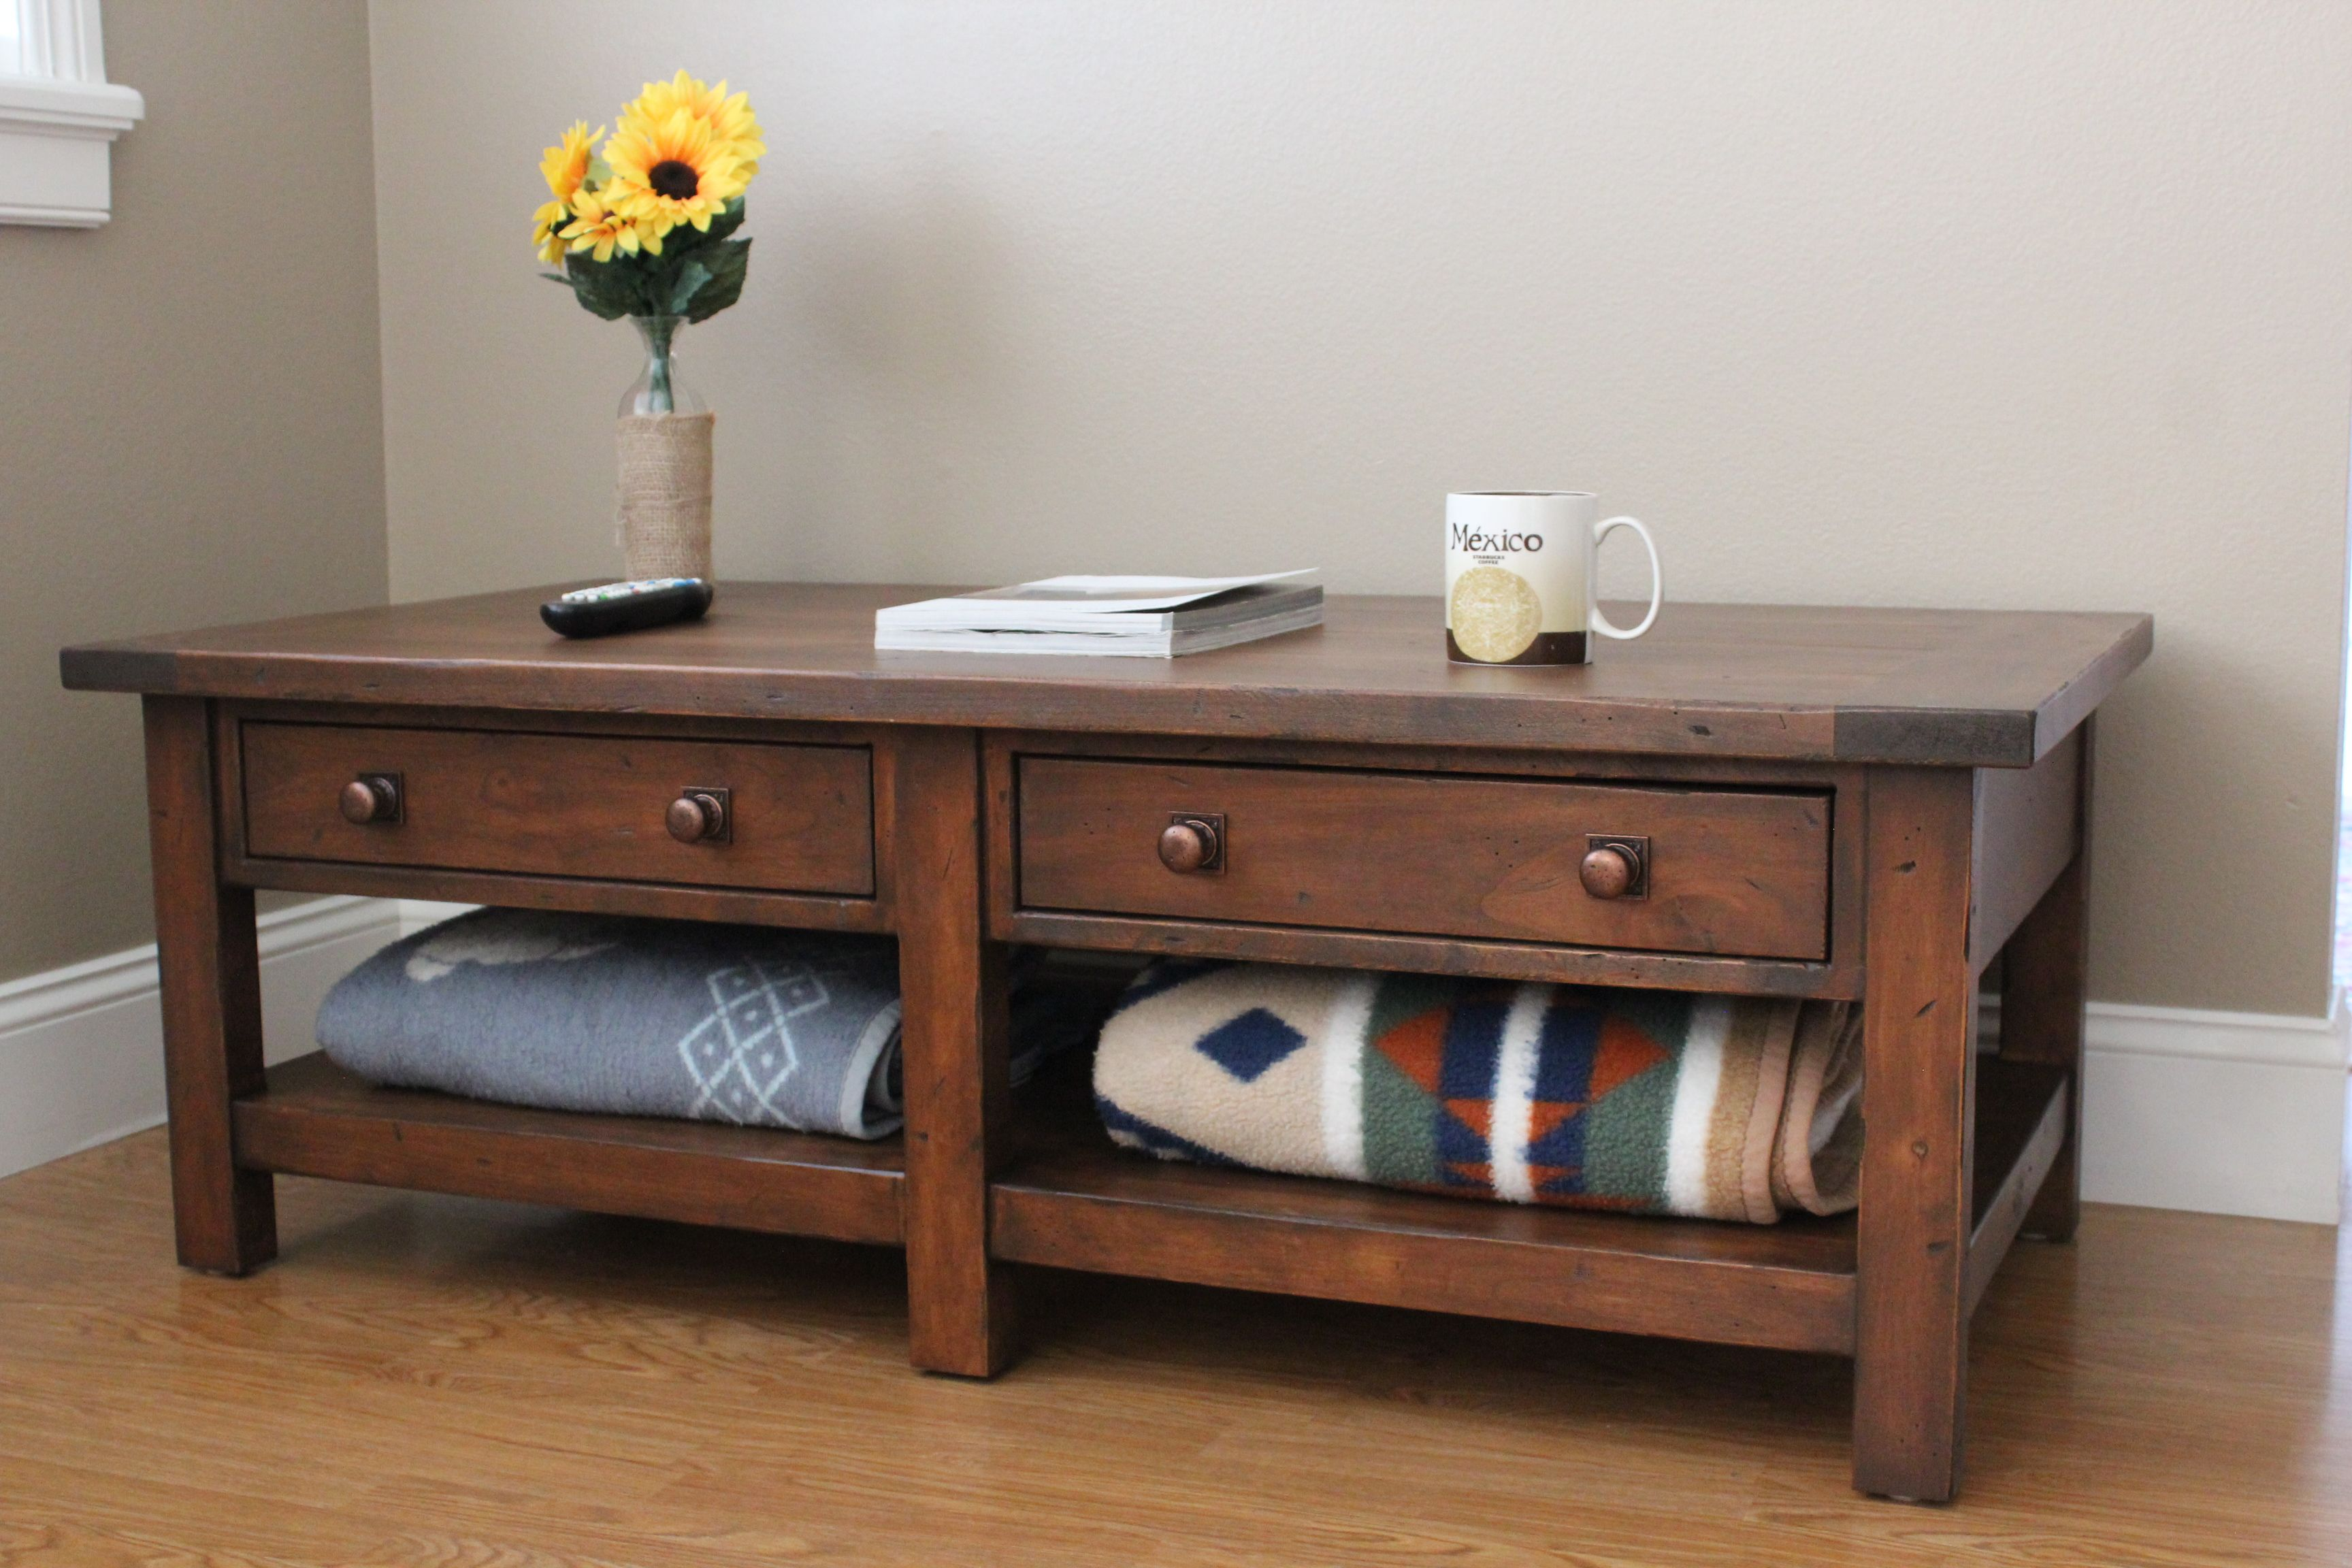 Ldiy Projects Replica Of The Pottery Barn Benchwright Coffee